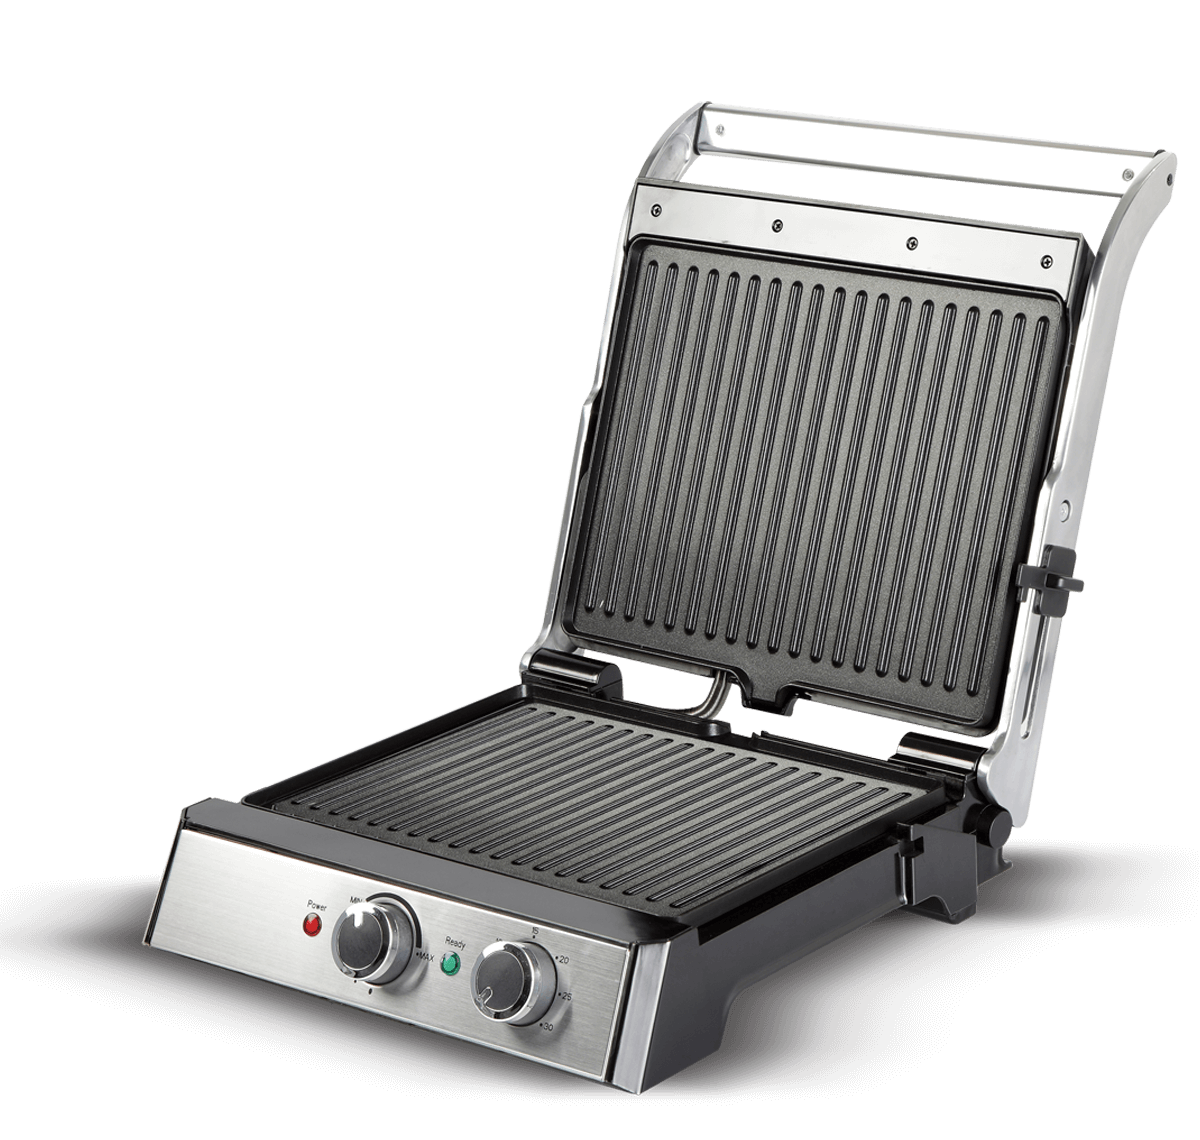 Toastino 4 slice grill & bbq with timer